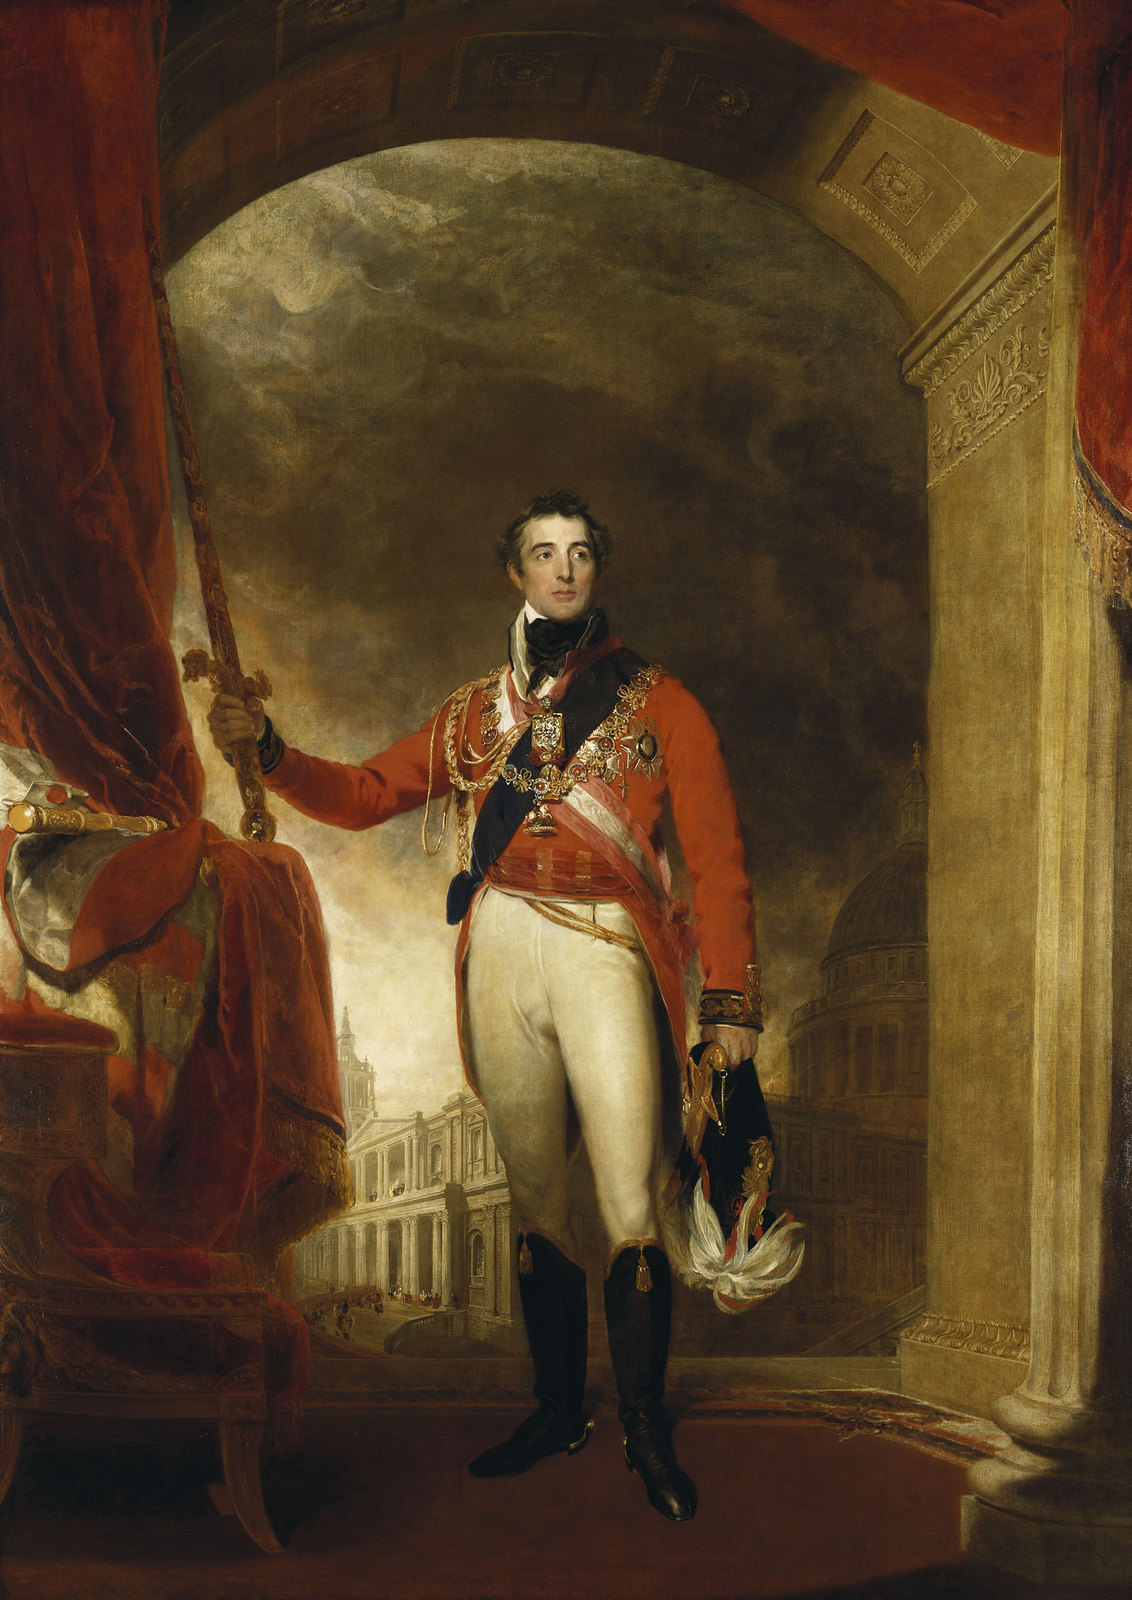 Portrait of Arthur Wellesley, 1st Duke of Wellington by Thomas Lawrence, 1815